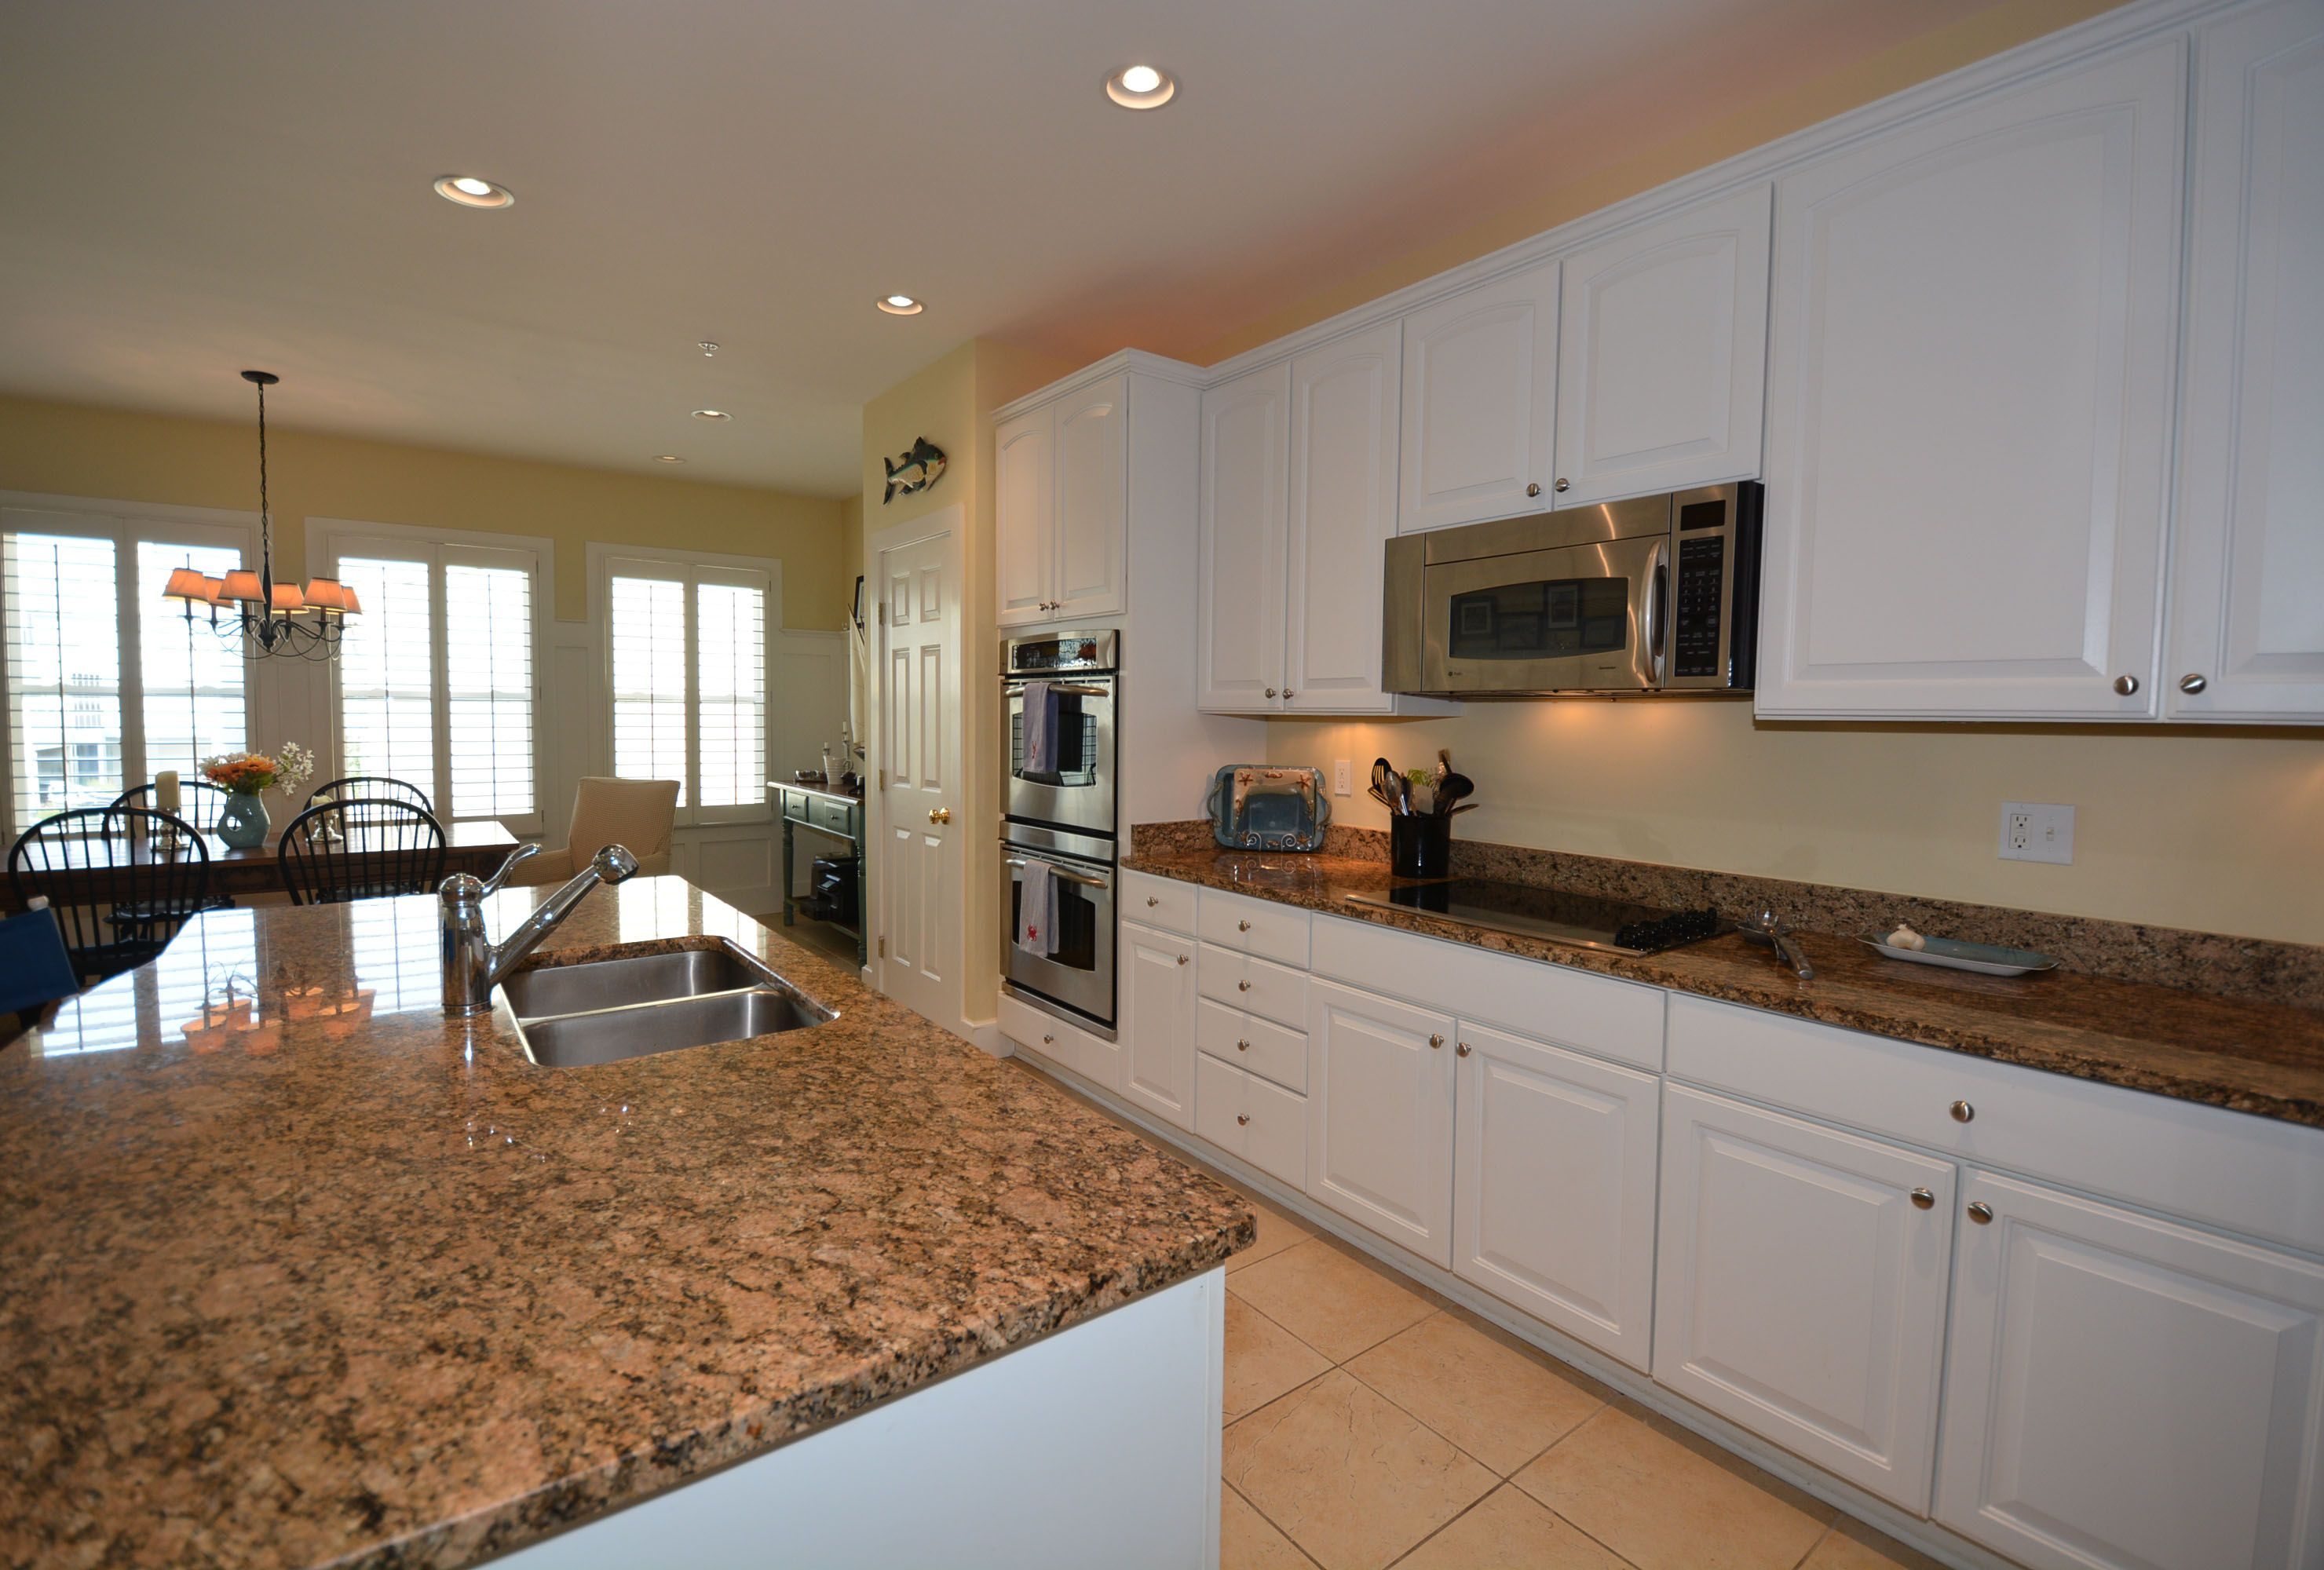 Kitchen featured in the Alexandria Classic By Covell Communities in Eastern Shore, MD